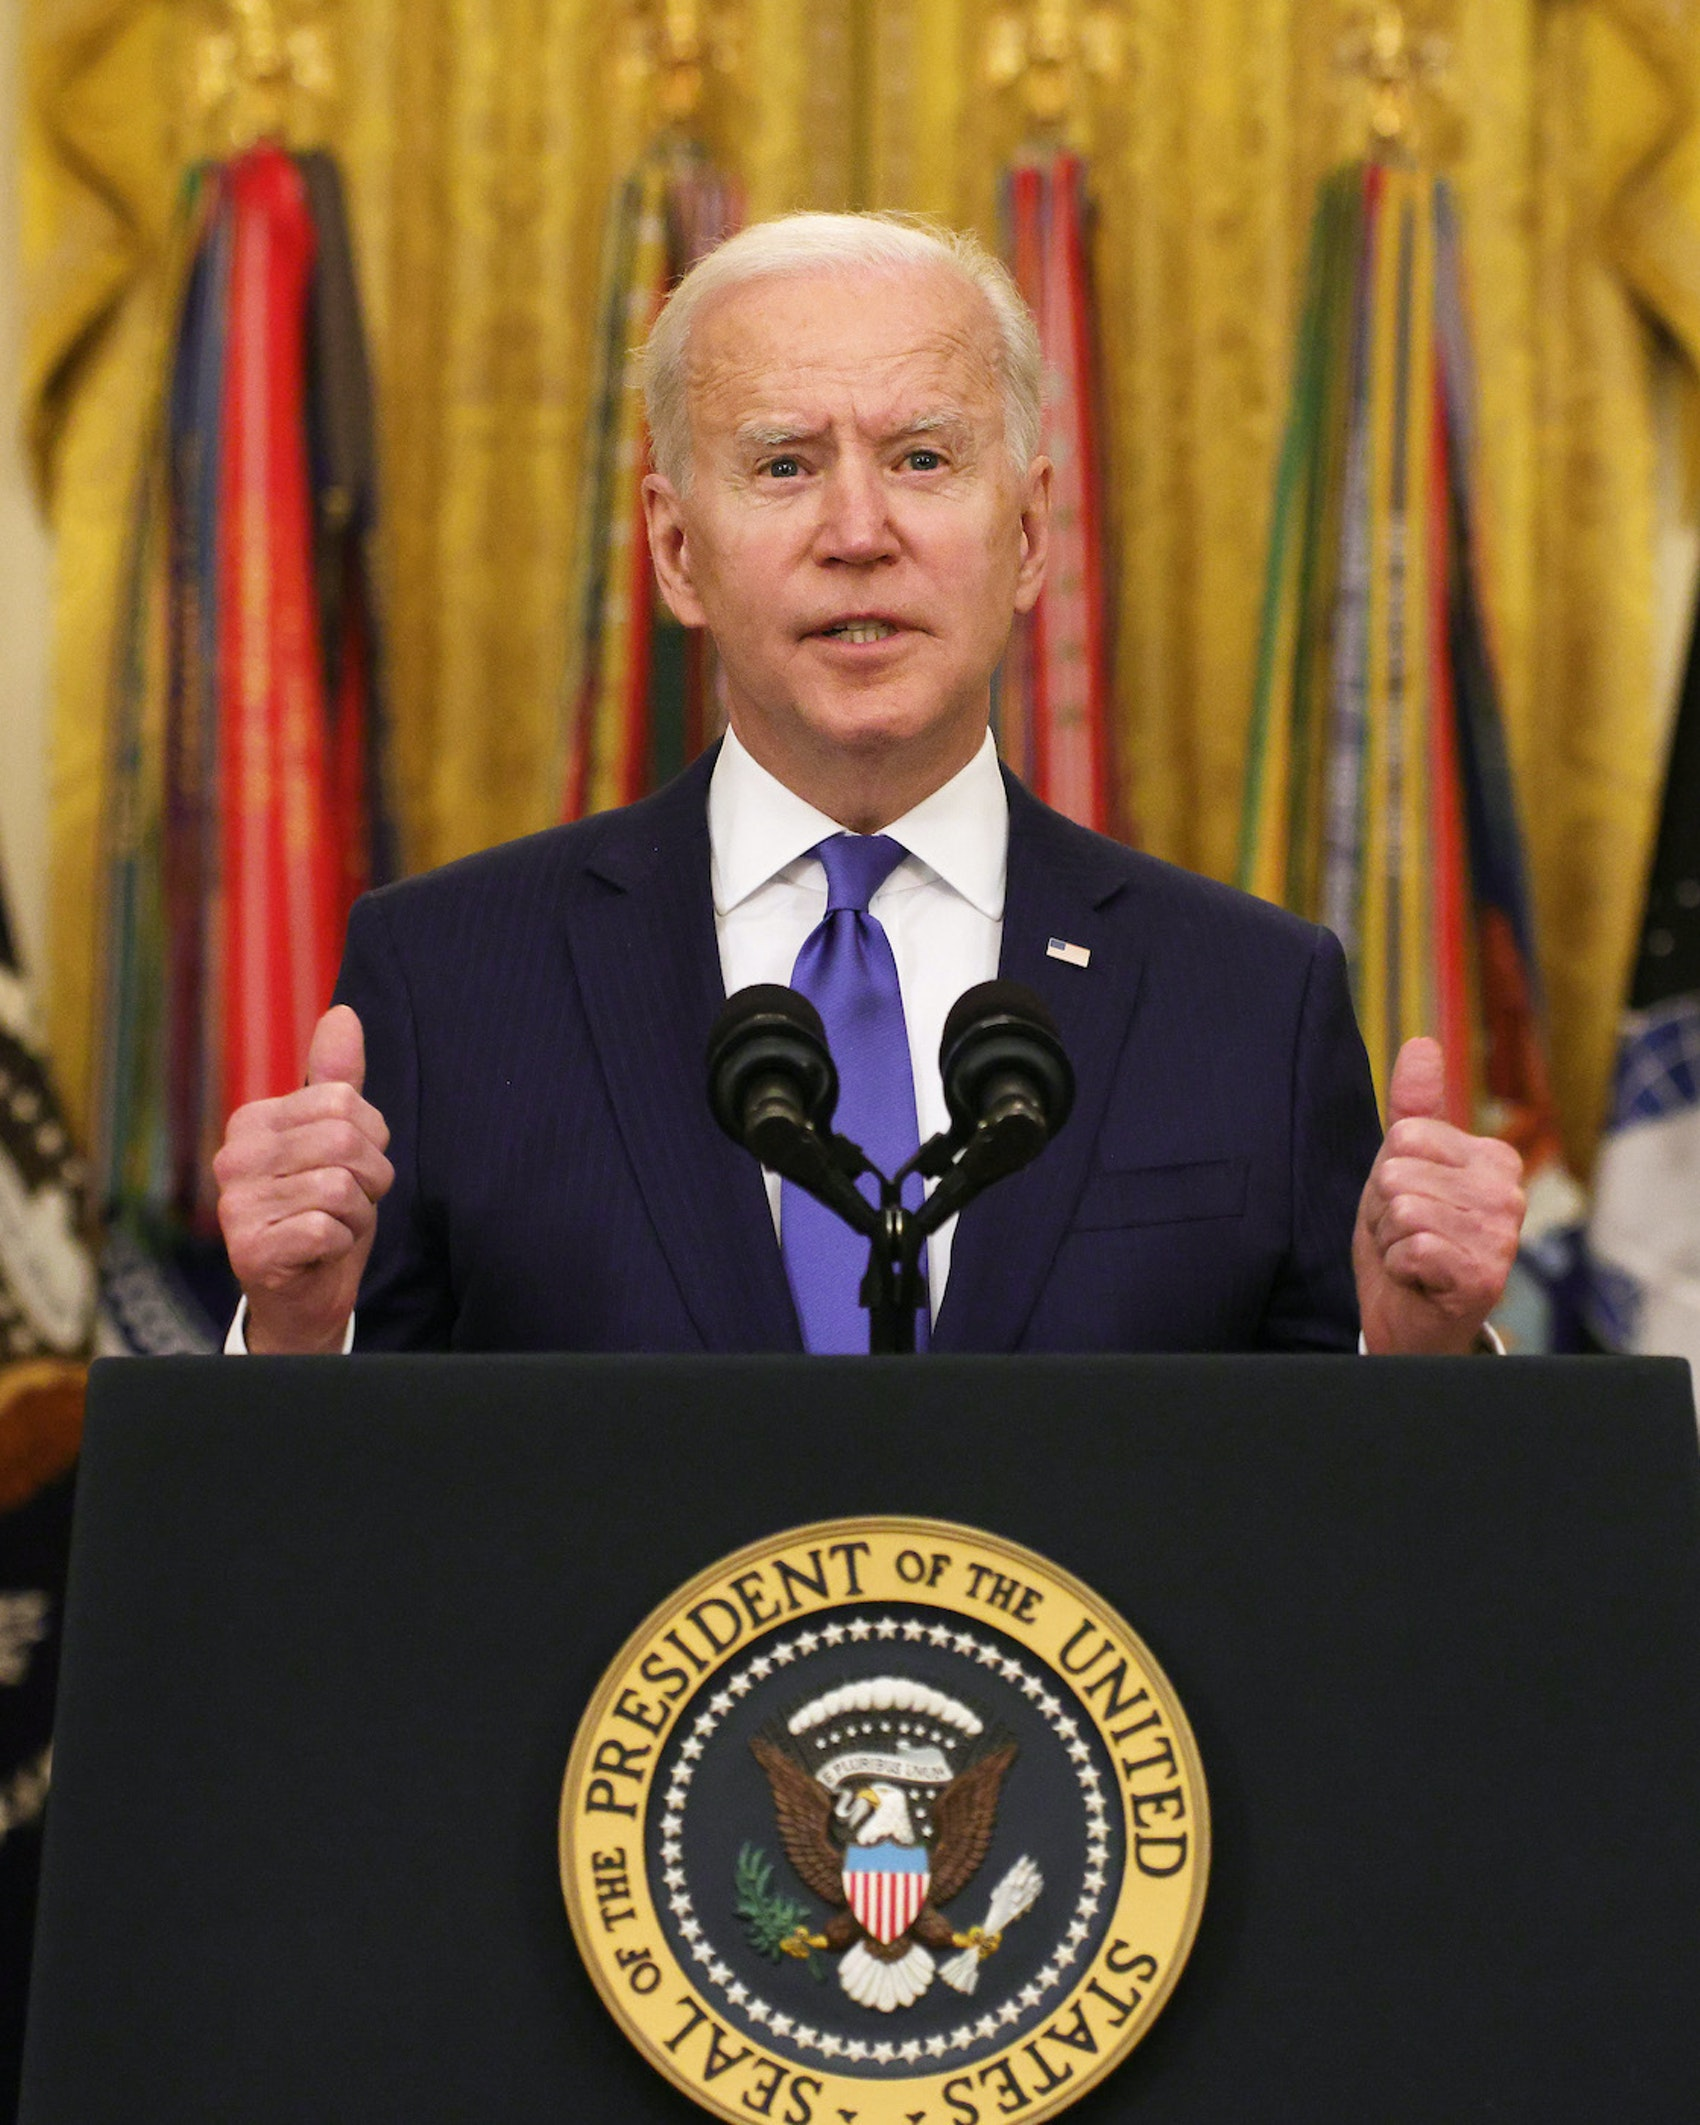 U.S. President Joe Biden delivers remarks on International Women's Day as Air Force General Jacqueline Van Ovost (L) and Army Lieutenant General Laura Richardson (R) listen during an announcement at the East Room of the White House March 8, 2021 in Washington, DC. President Biden announced the nominations of General Van Ovost and Lieutenant General Richardson to positions as 4-star combatant commanders. They will become the second and the third women to lead a combatant command in American history. (Photo by Alex Wong/Getty Images)